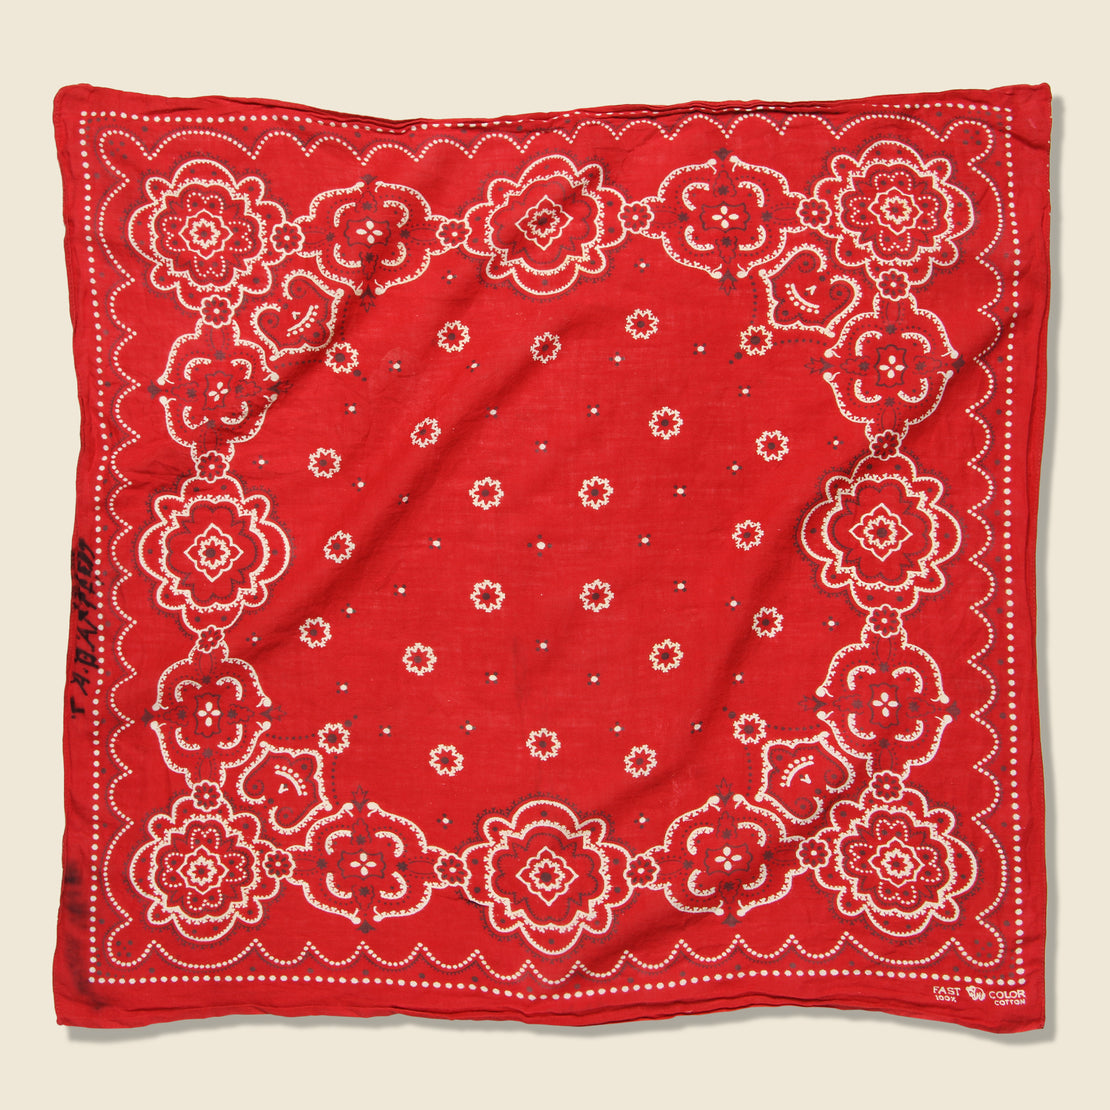 Vintage Fast Color Bandana - Red & White Paisley/Dotted Border